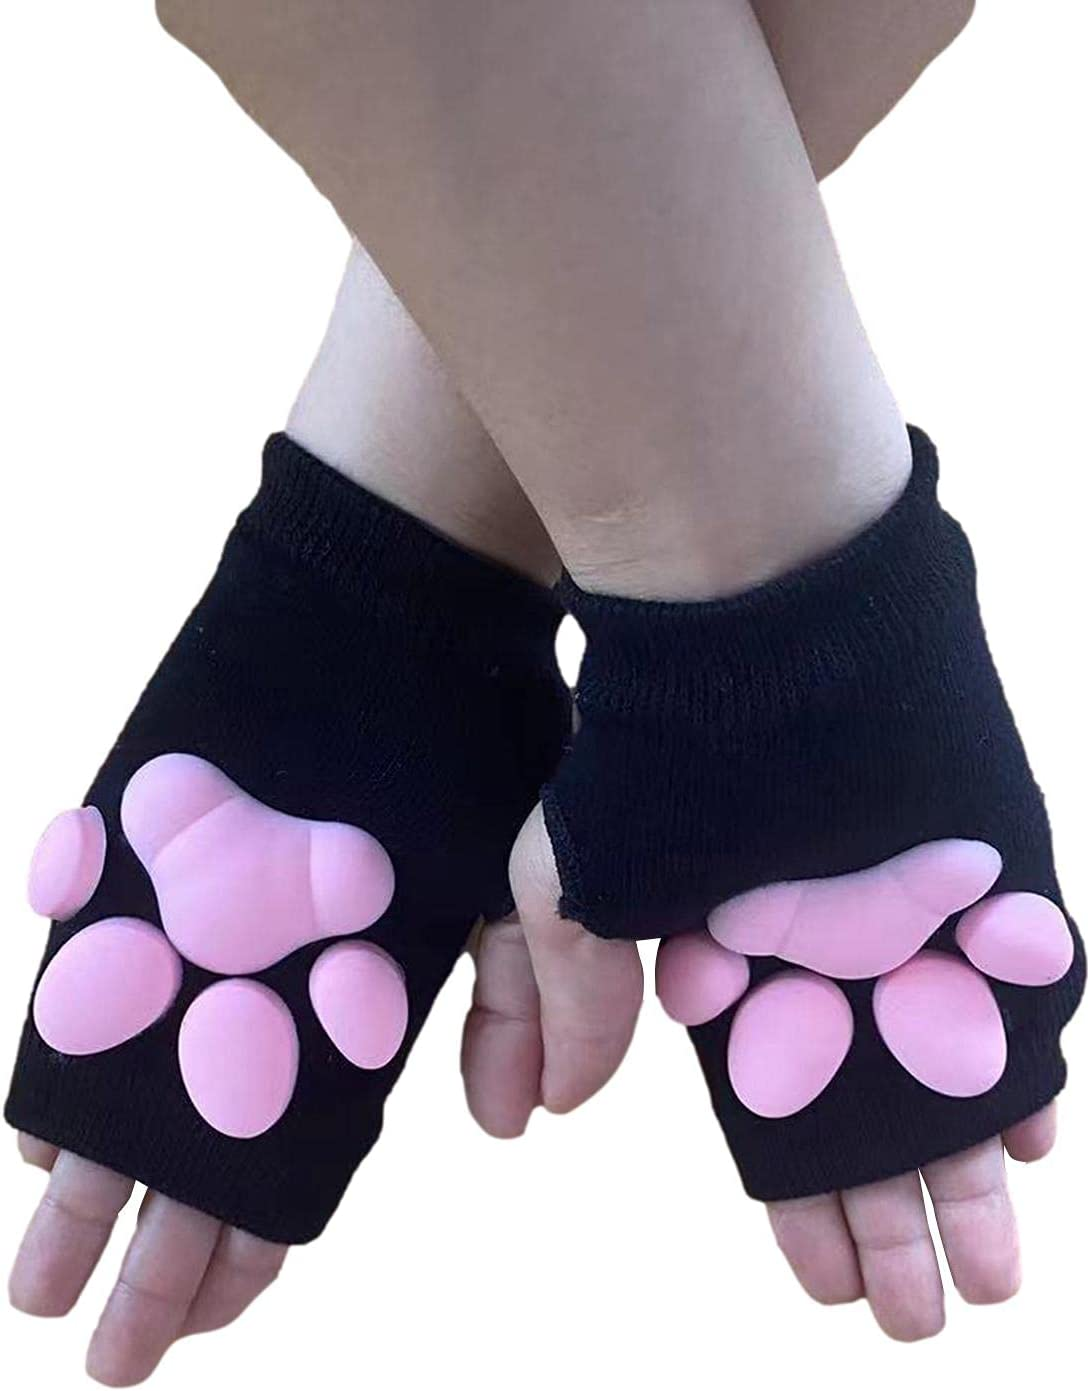 riskaLa Cute Cat Paw Mittens Gloves, 3D Cat Claw Pad Gloves,Cat Lolita Cosplay Hand Sleeves for Girls Women